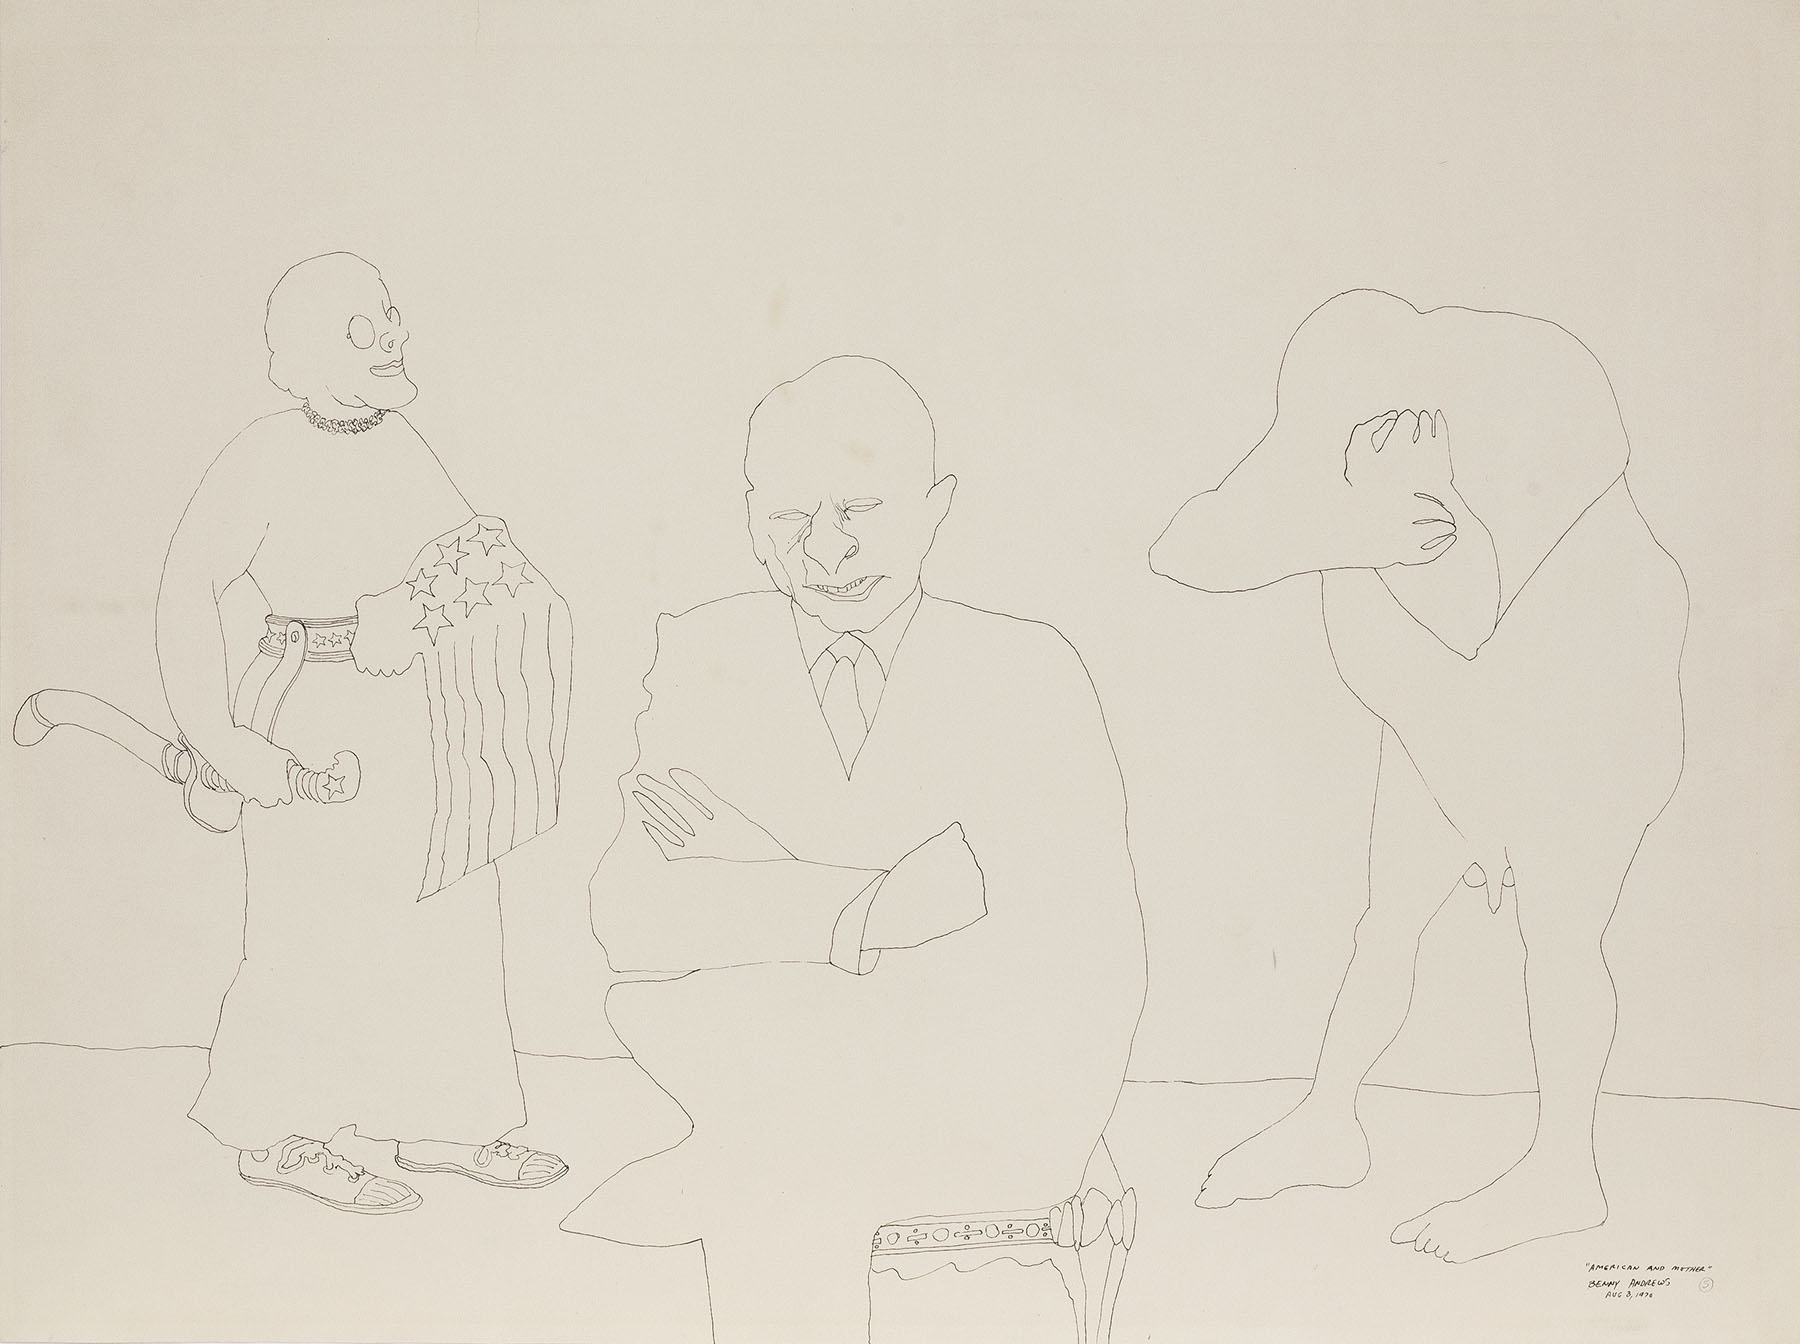 """America and Mother (Study for Symbols), 1970 pen and ink on paper 18 x 24.25"""""""